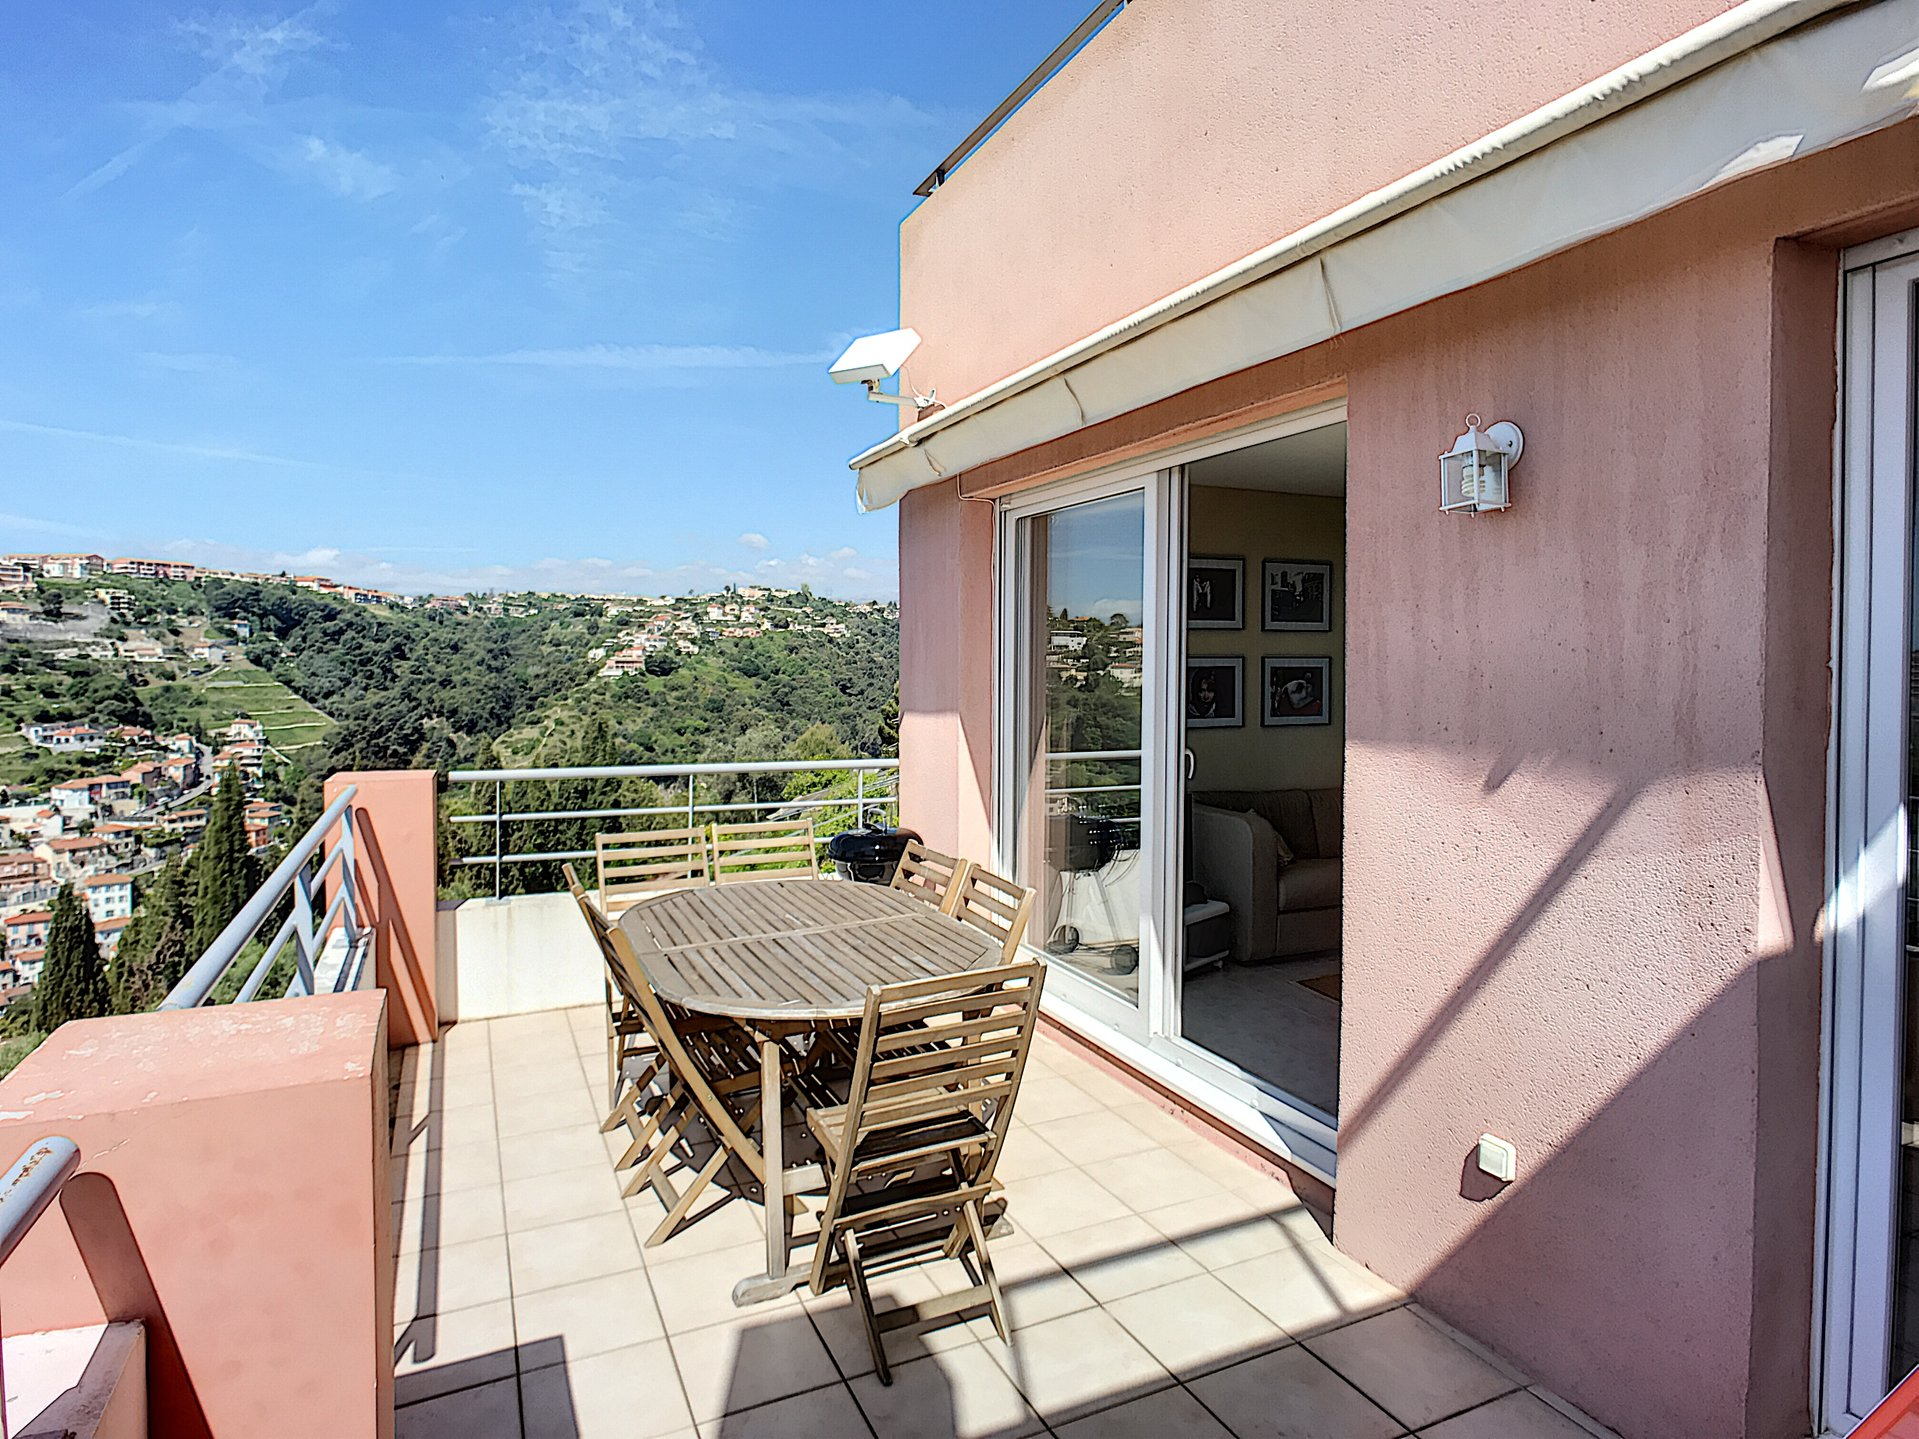 Seasonal rental Apartment - Nice